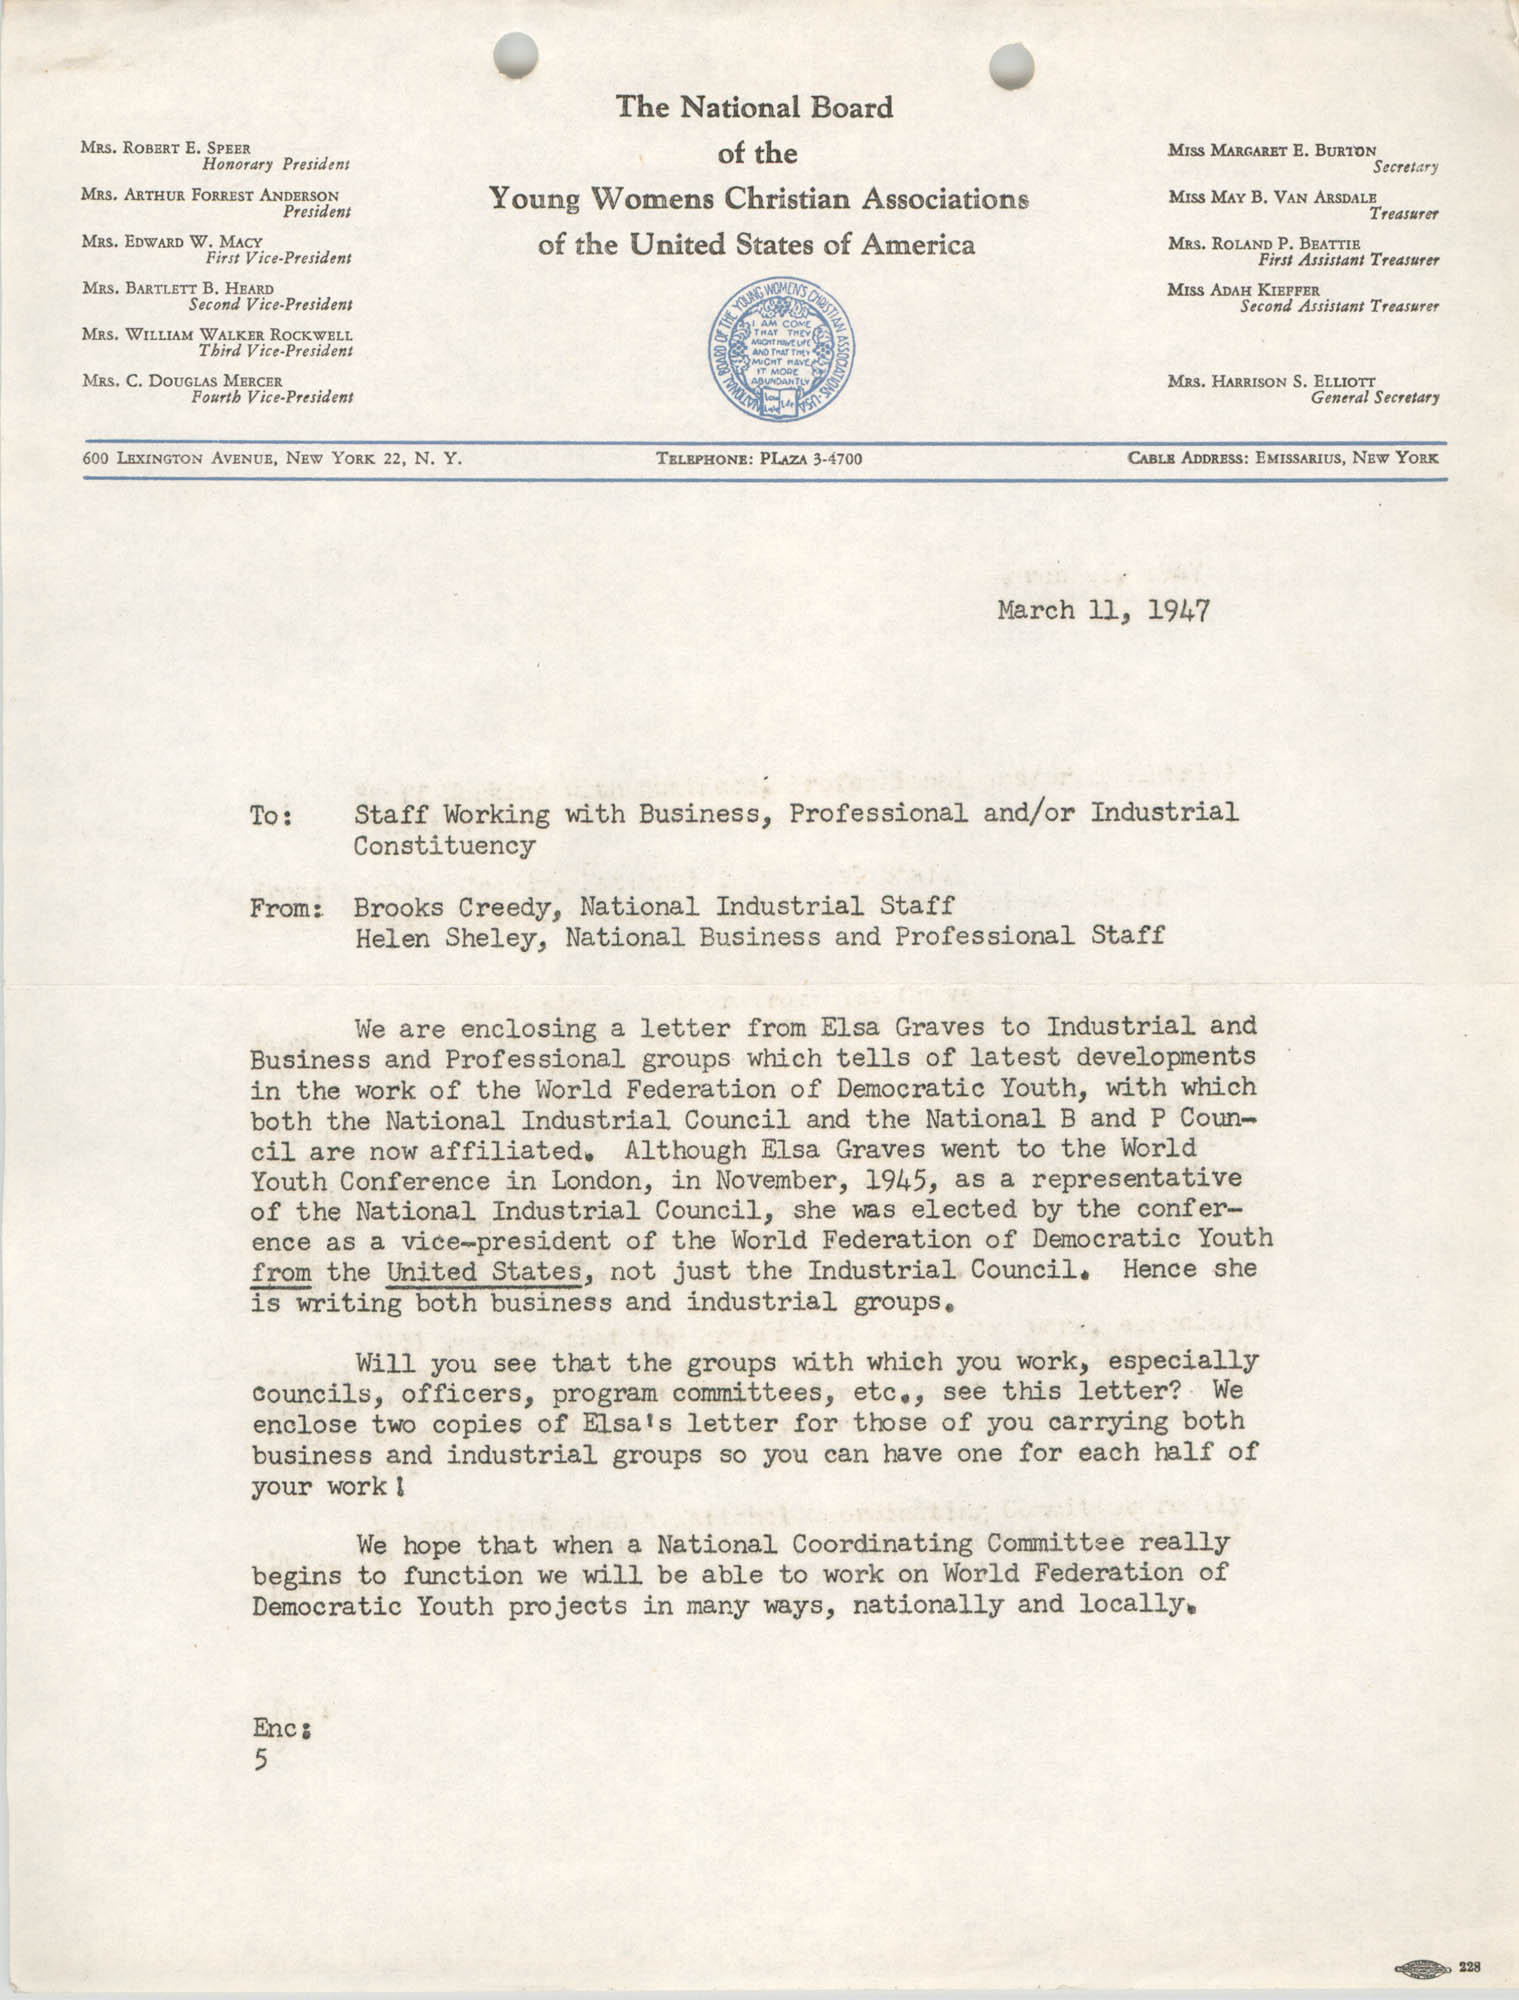 National Board of the Y.W.C.A. Business and Professional Girls Council Correspondence, 1947